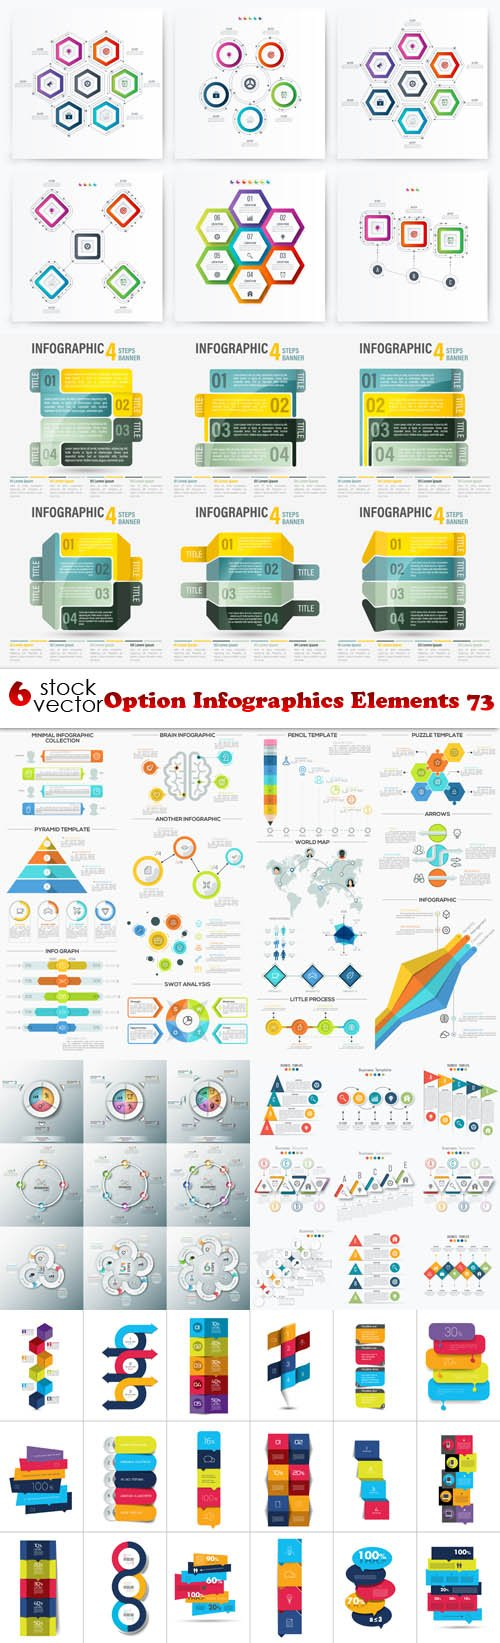 Vectors - Option Infographics Elements 73